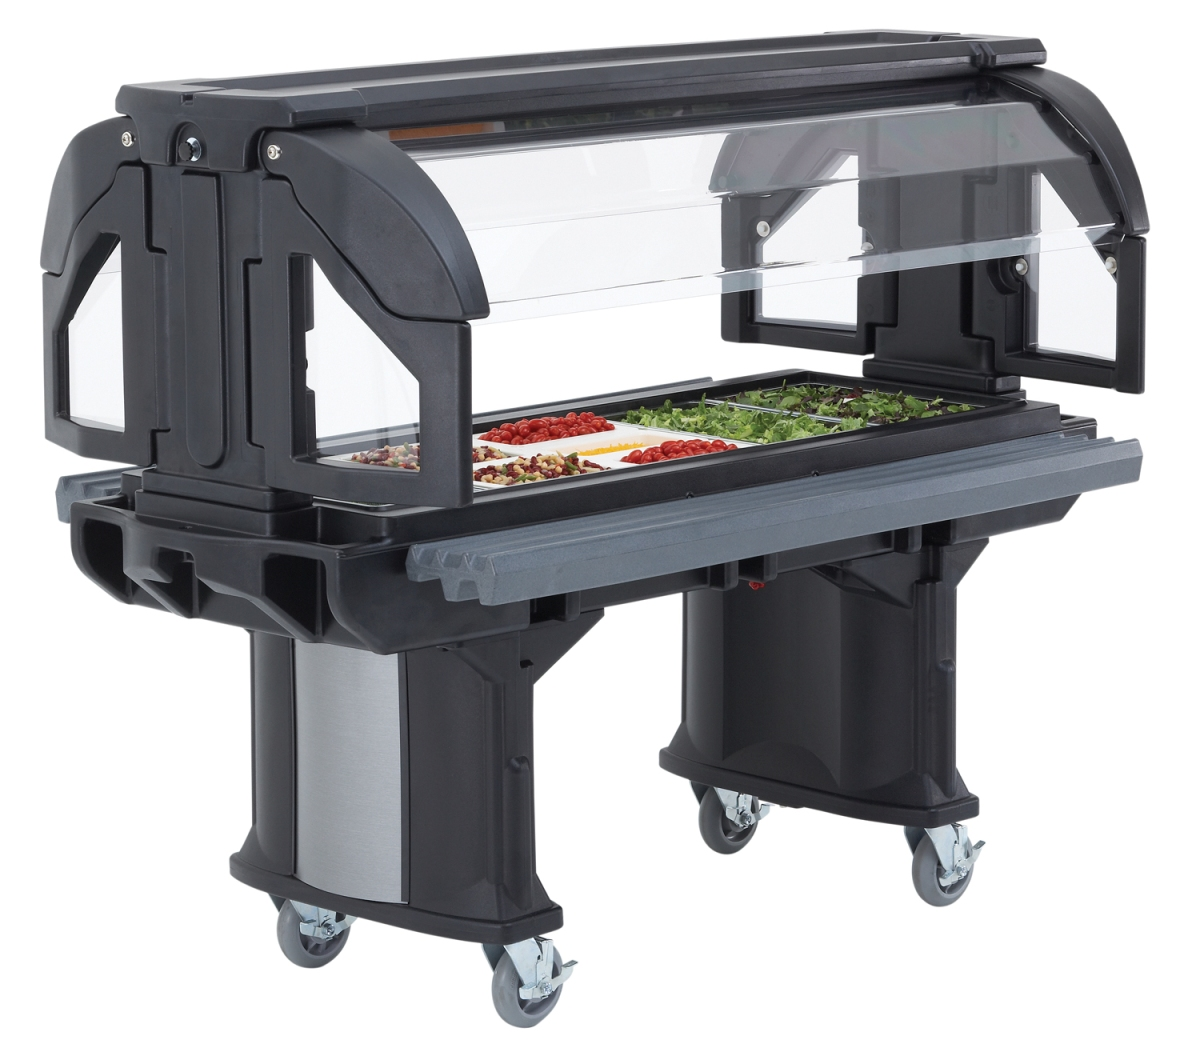 Cambro Versa Food Bar - salad bar for schools